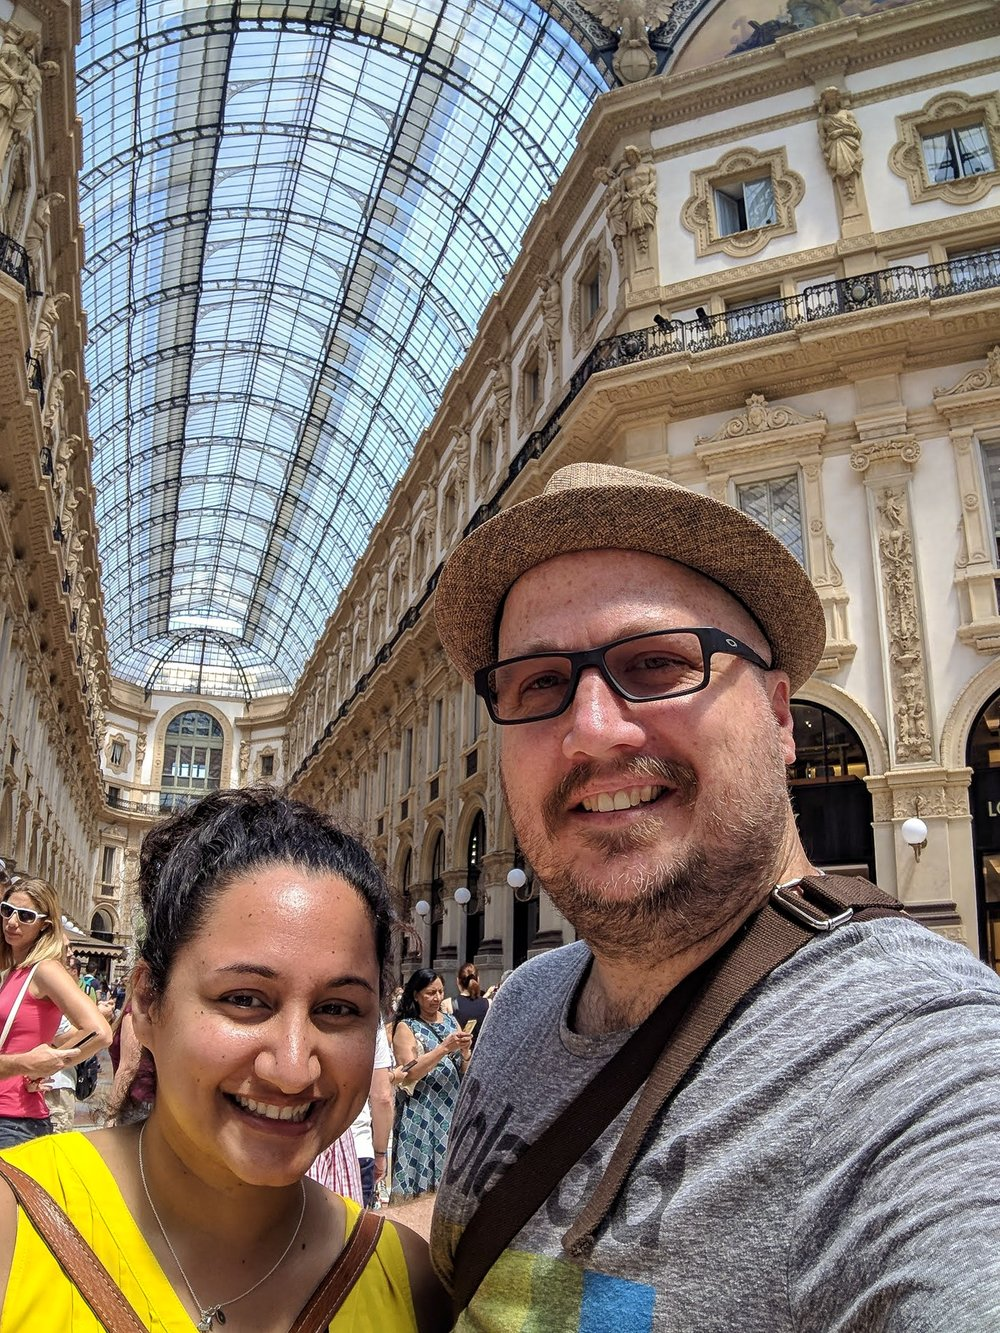 Mingling in Milan at the Galleria Vittorio Emanuele II